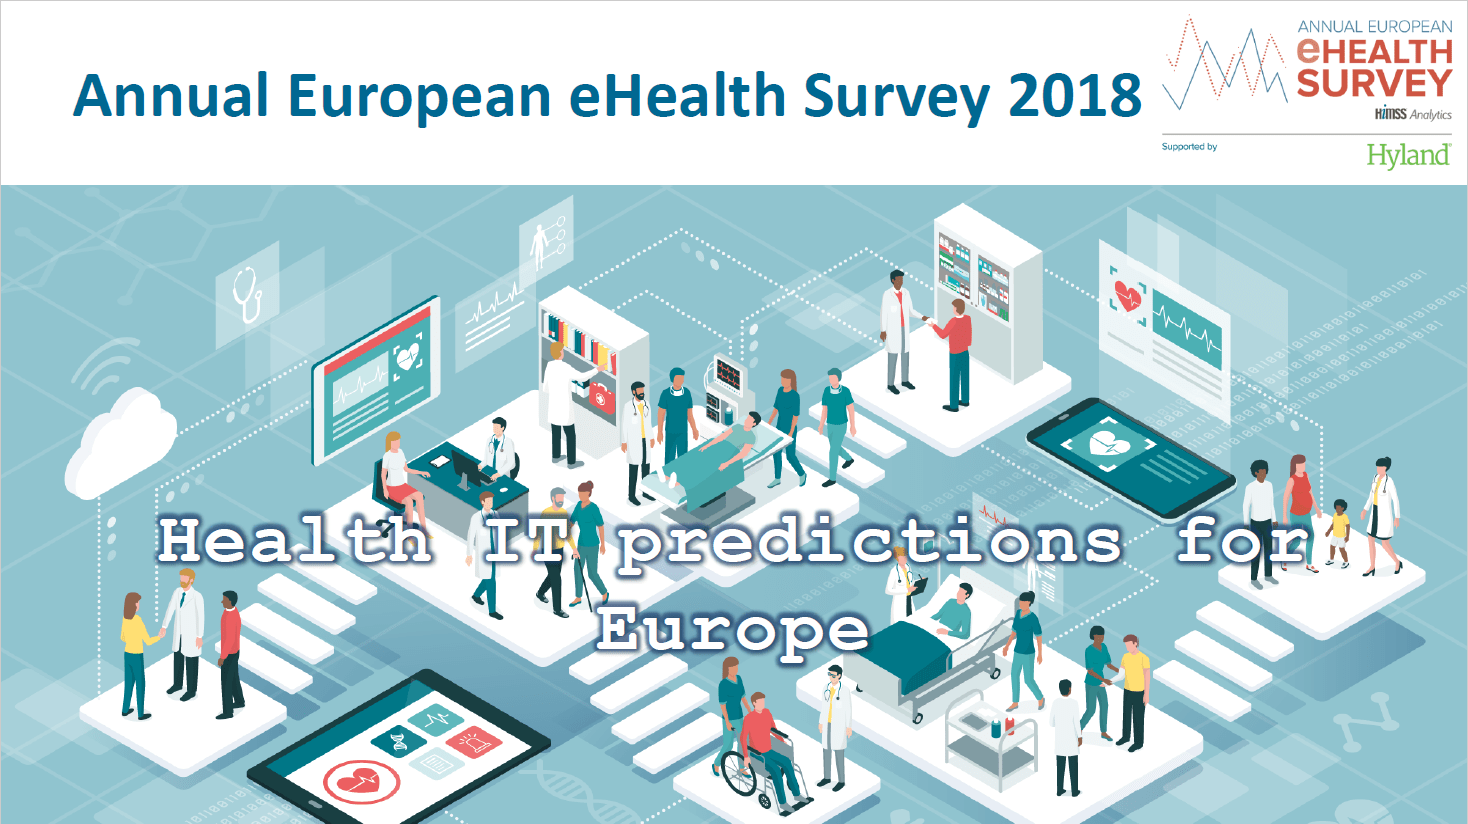 HIMSS Annual European eHealth Analytics 2018